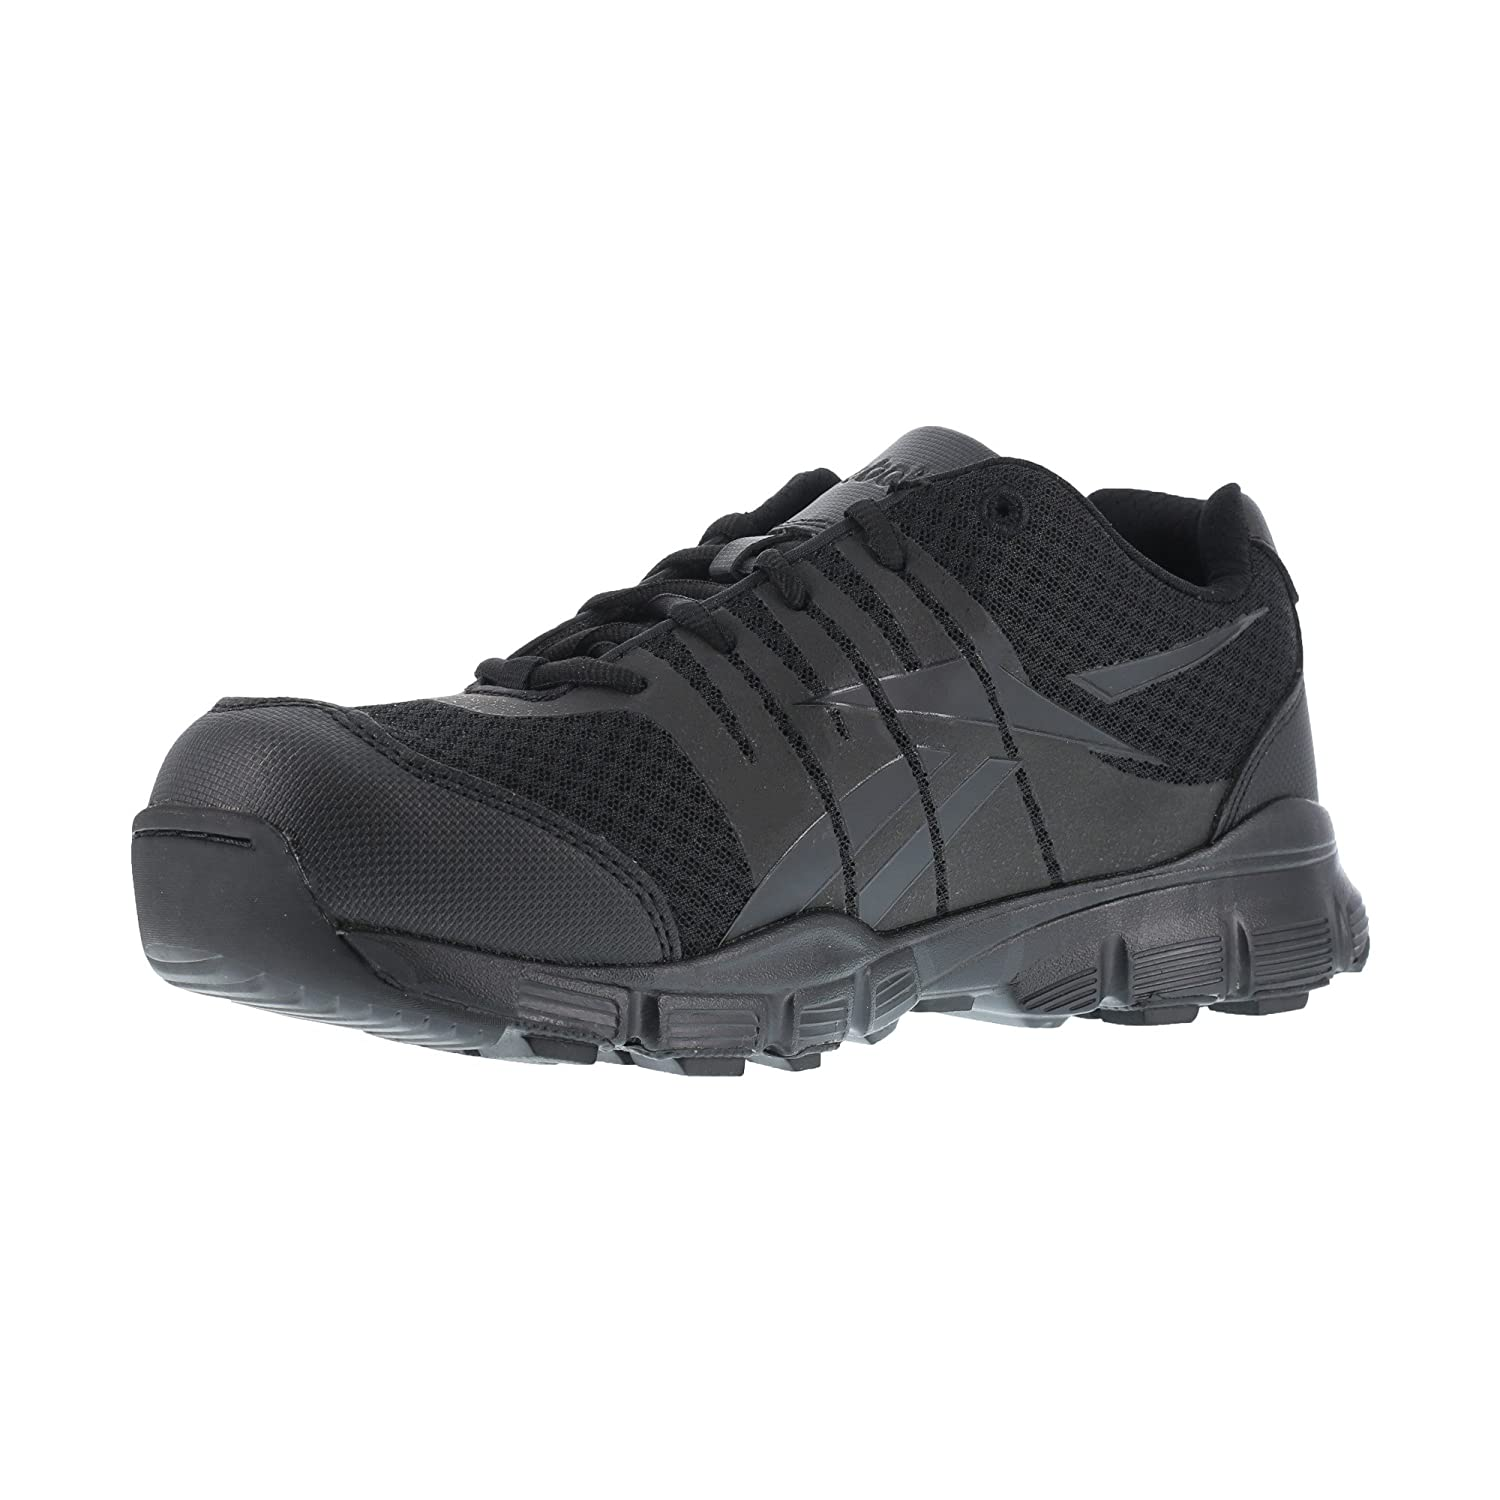 6f77e0d6bd0a1 Amazon.com: Reebok Mens Black Micro Mesh Tactical Oxford Dauntless ...